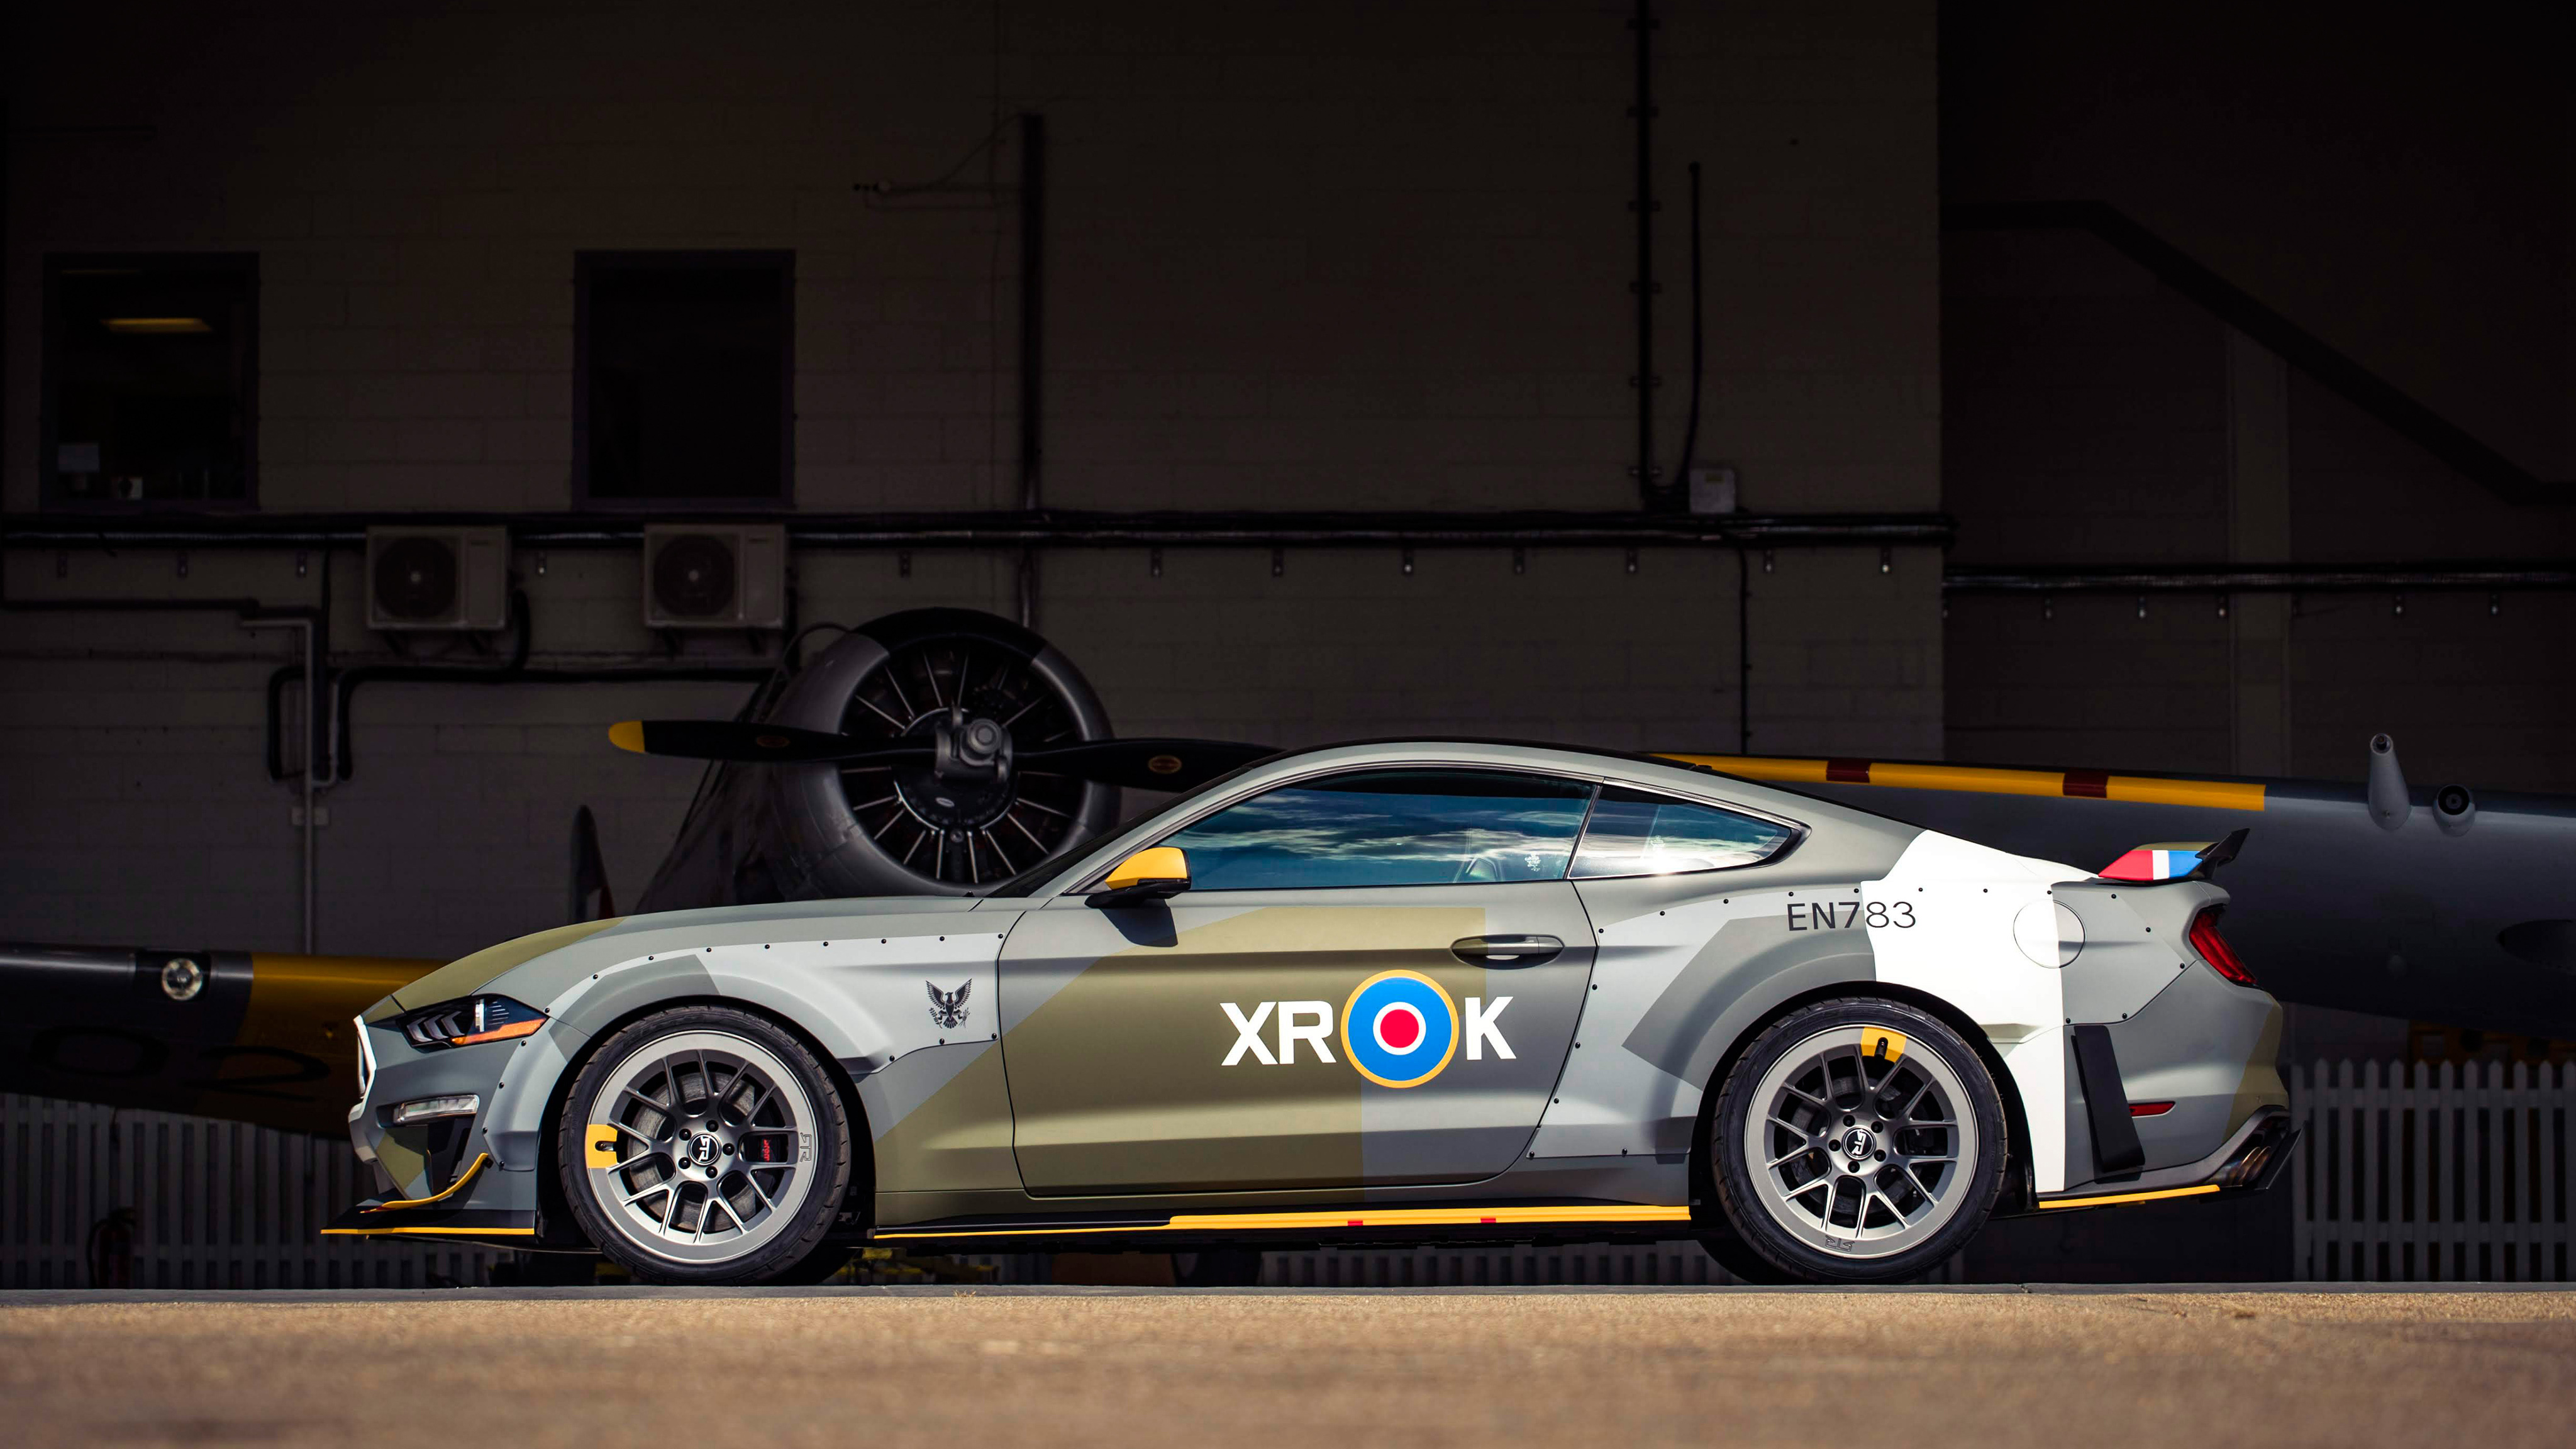 Ford Eagle Squadron Mustang Gt 2018 4k 6 Wallpaper Hd Car